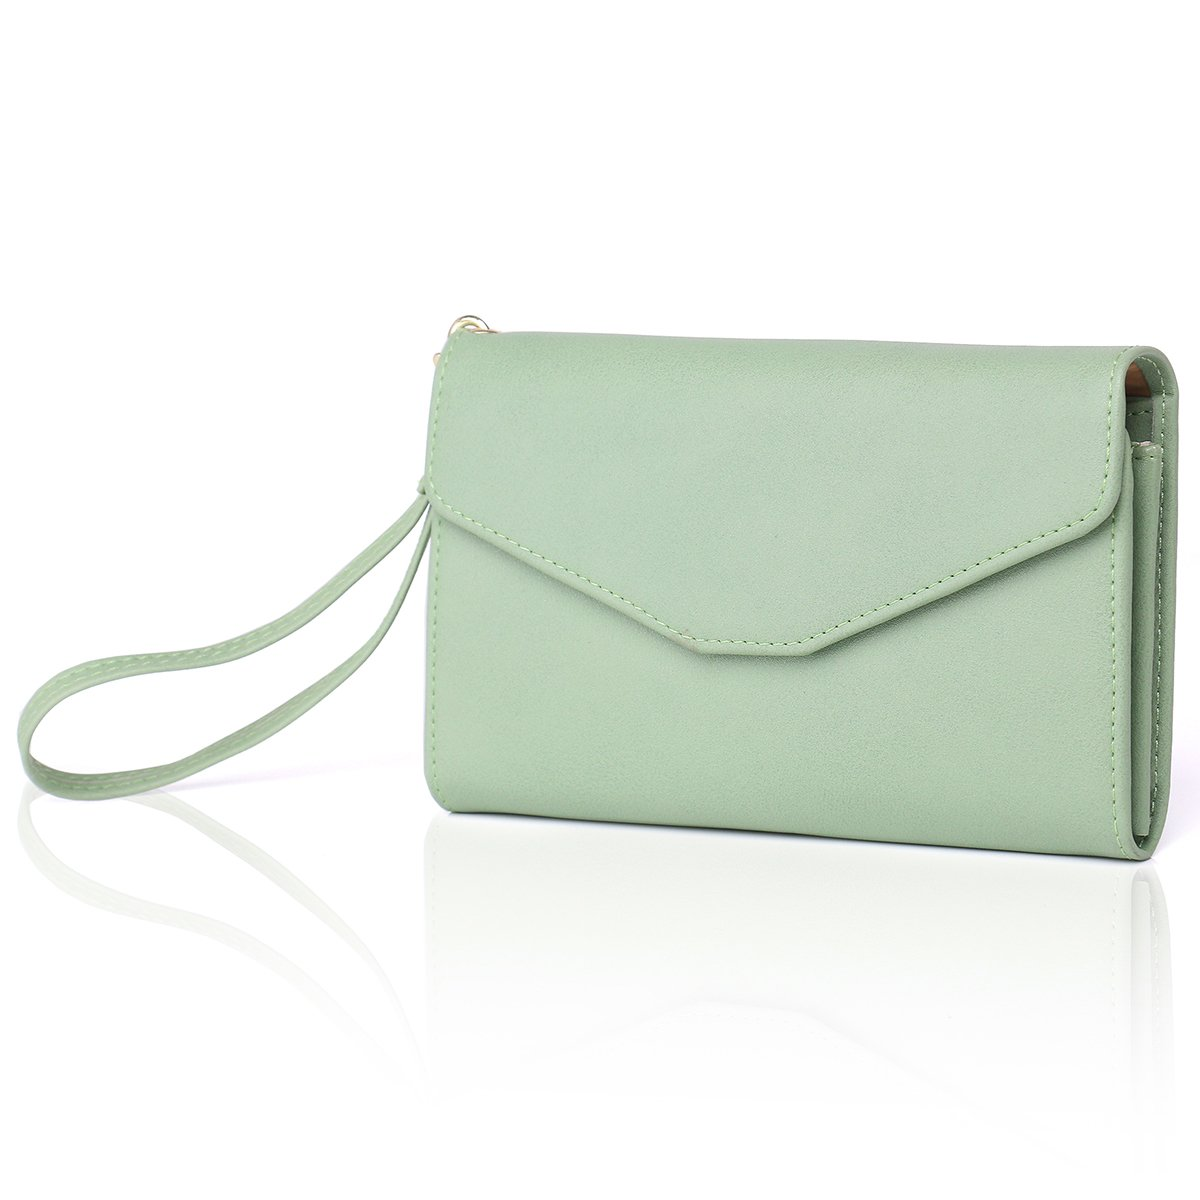 Zg Wristlets for Women, Cell Phone Clutch Wallet, Passport Wallet, All In One Purse Extra Capacity by Zg gift (Image #3)